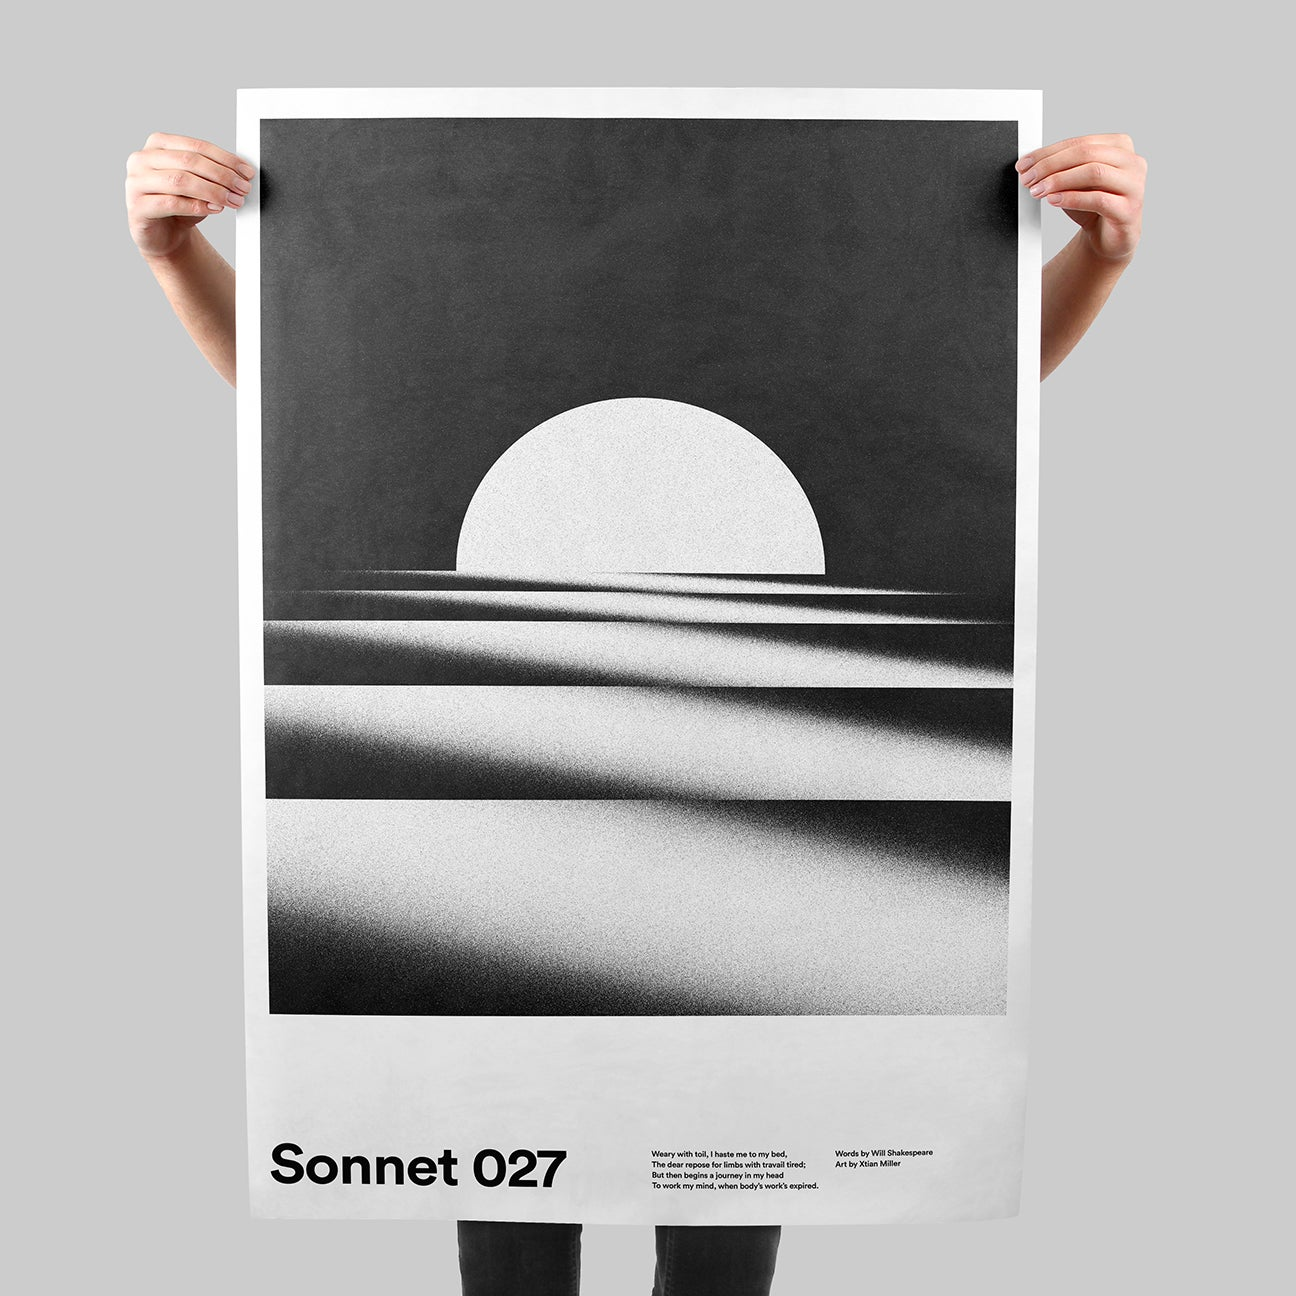 Image of Sonnet 027